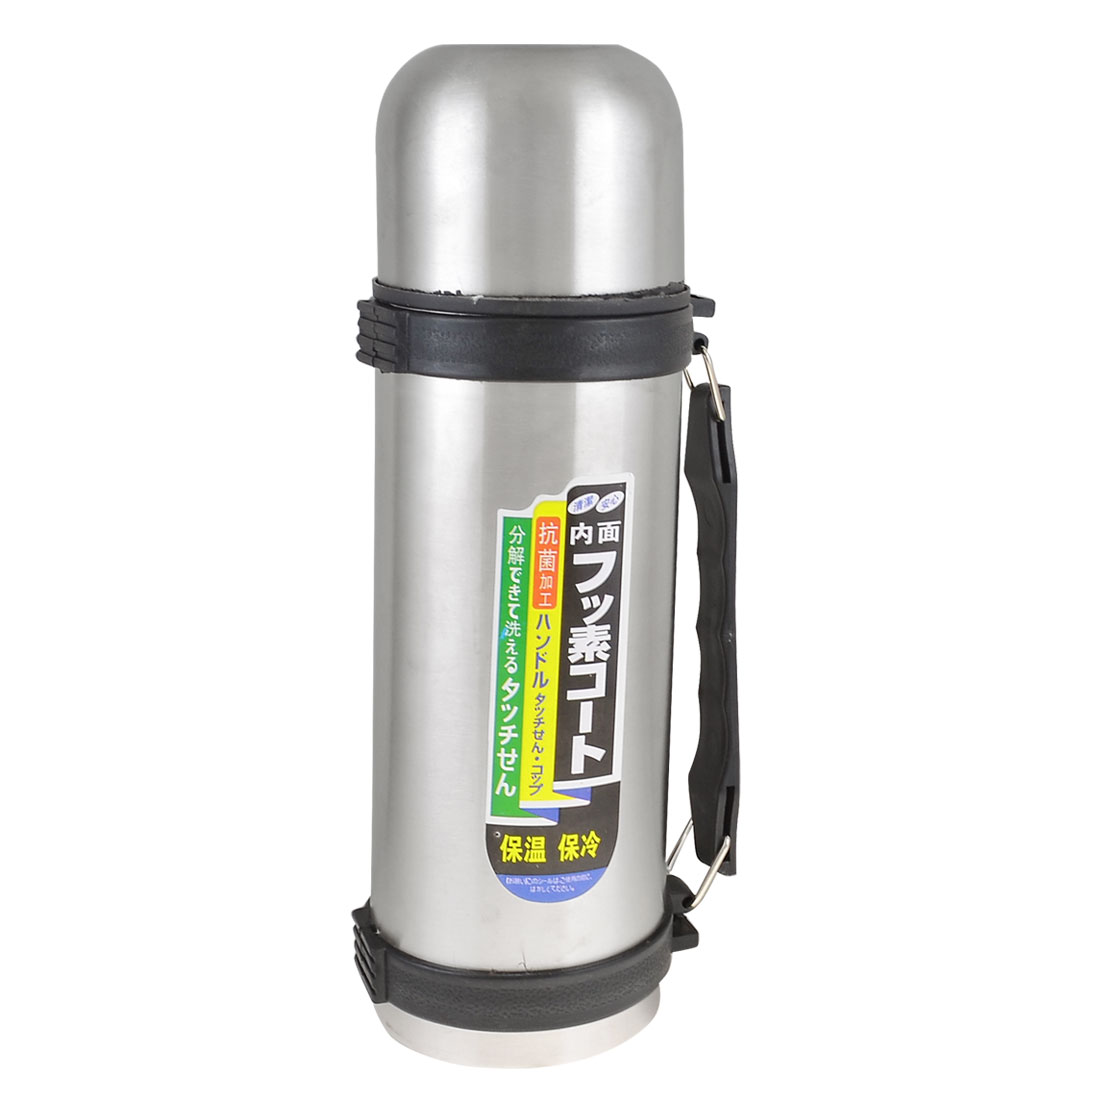 Silver Tone Stainless Steel Sports Travel Vacuum Flask Water Bottle Cup 300ml